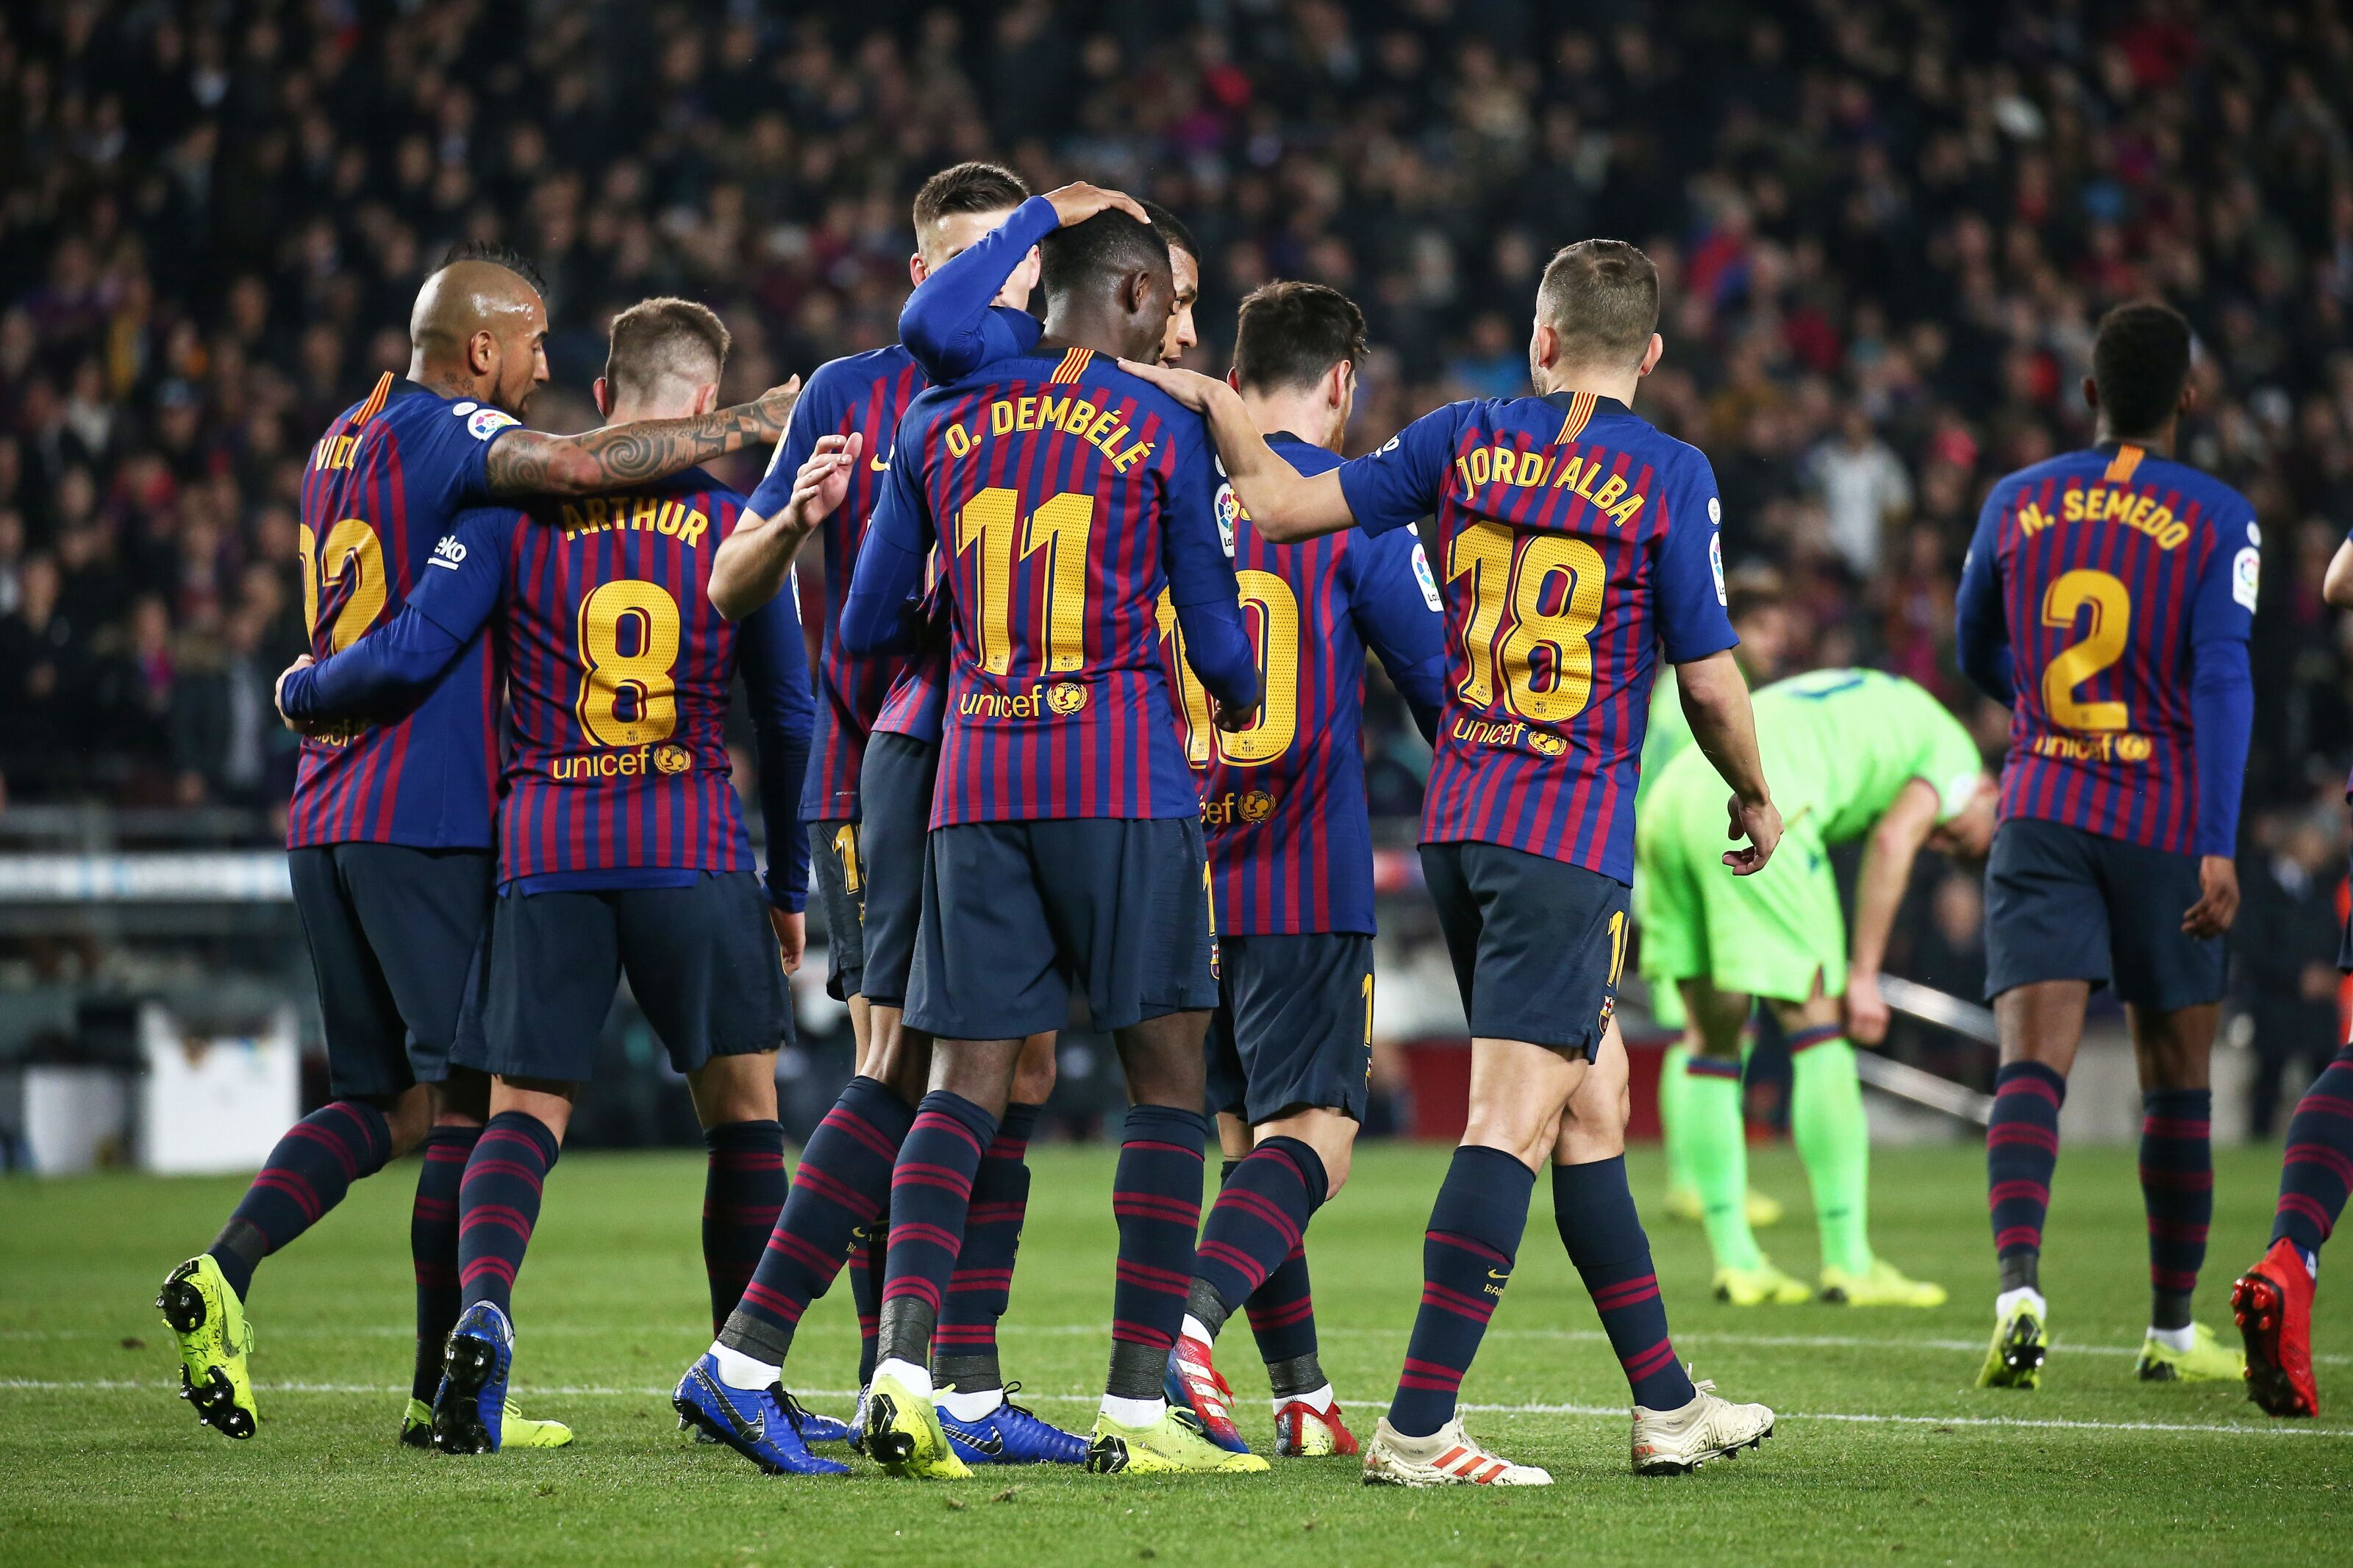 Barcelona vs Levante: Expected Starting XI for potential title clincher